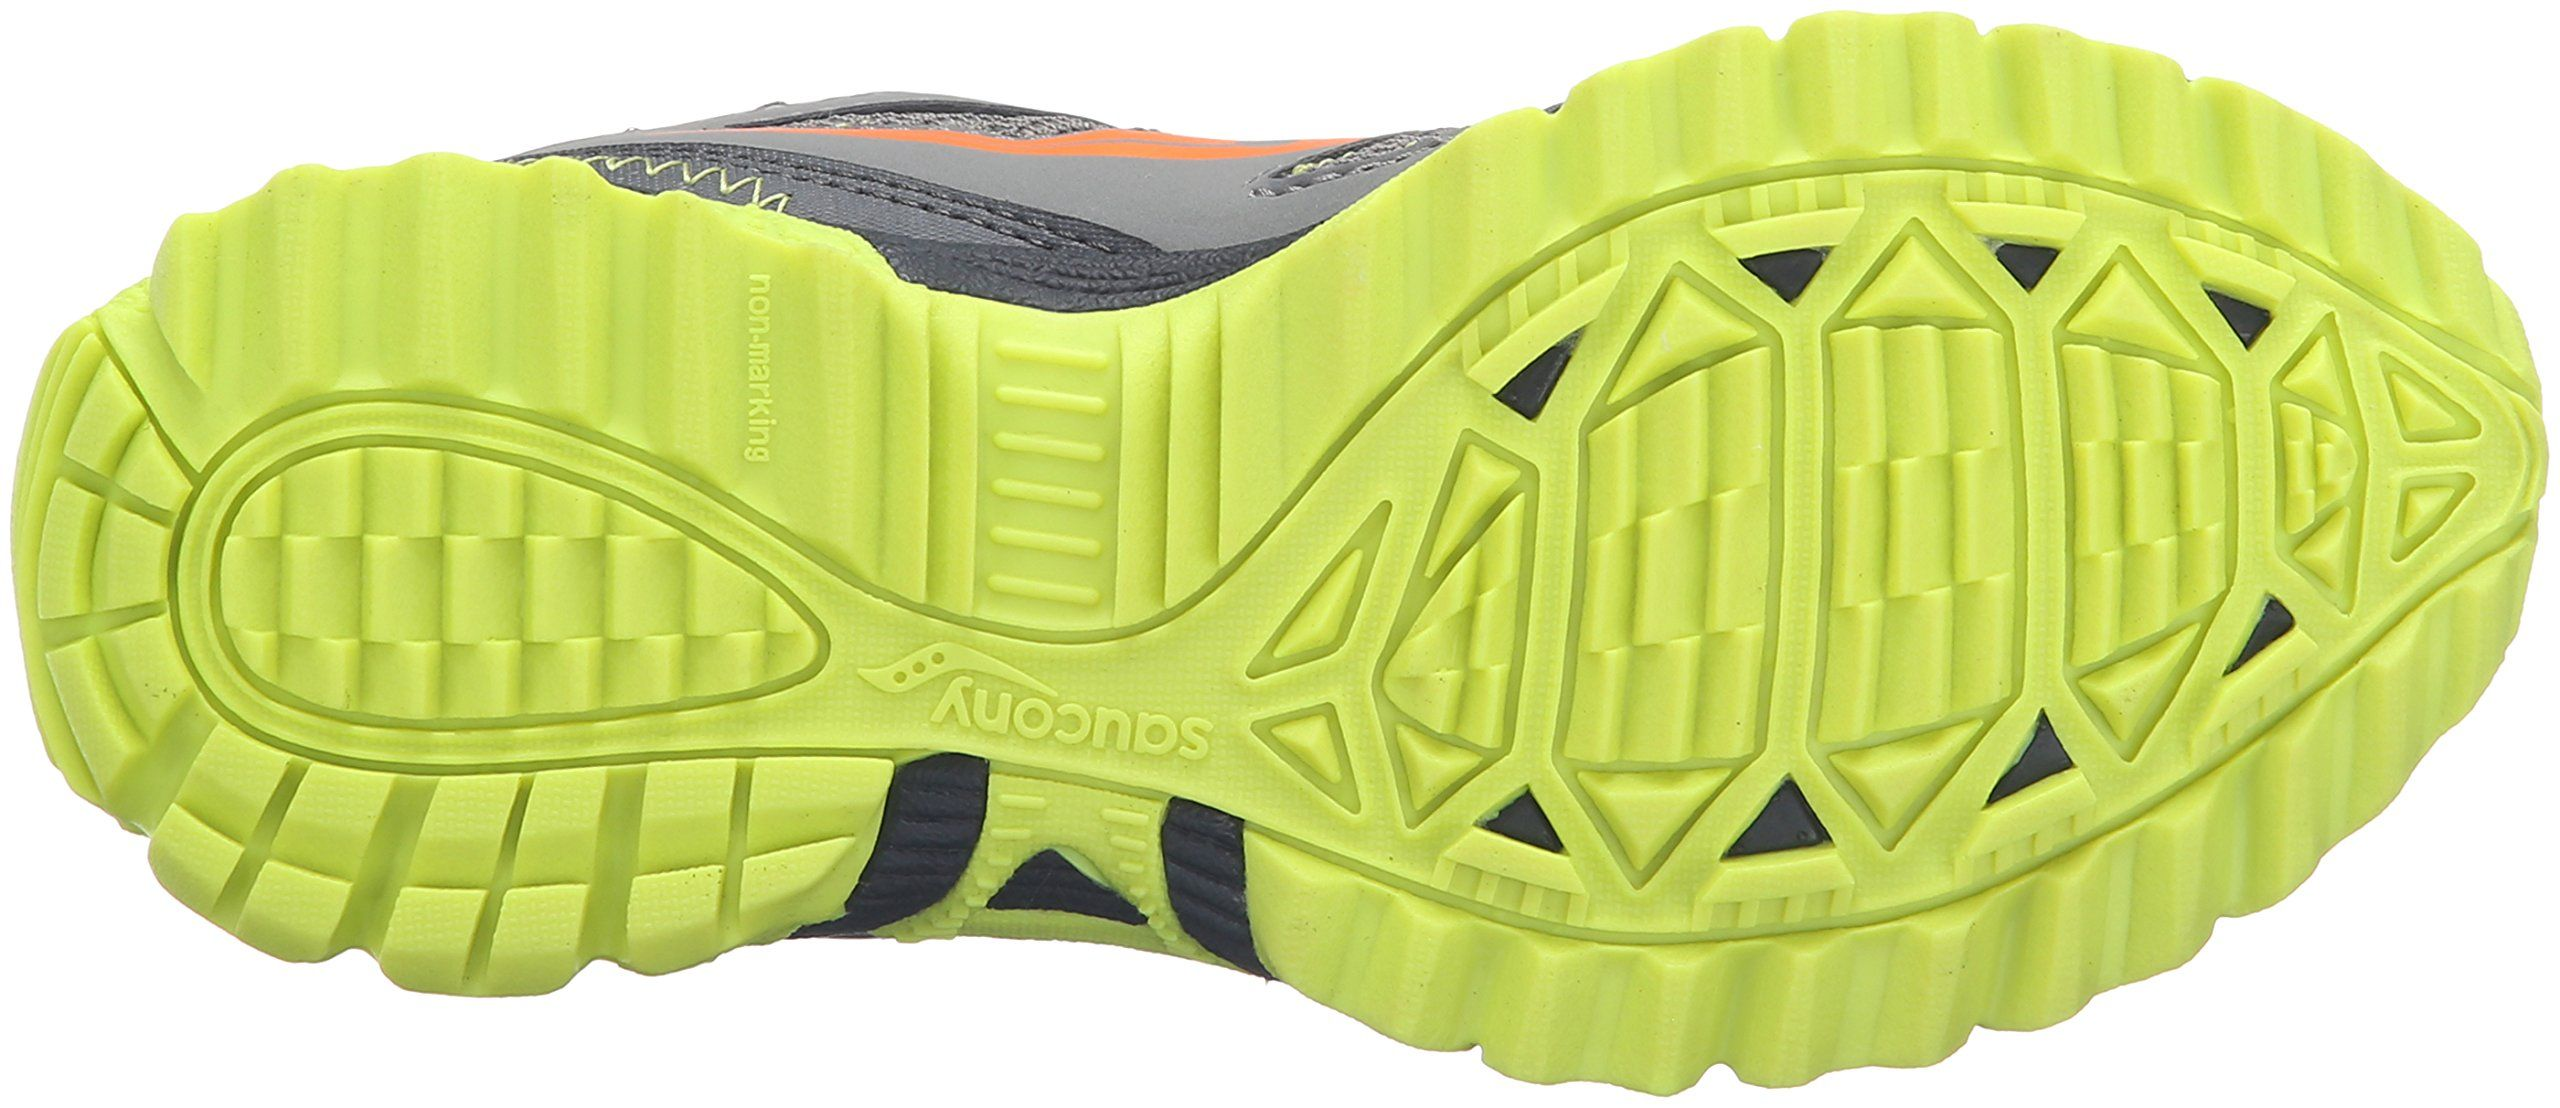 Little Kid Saucony Excursion Shield Sneaker